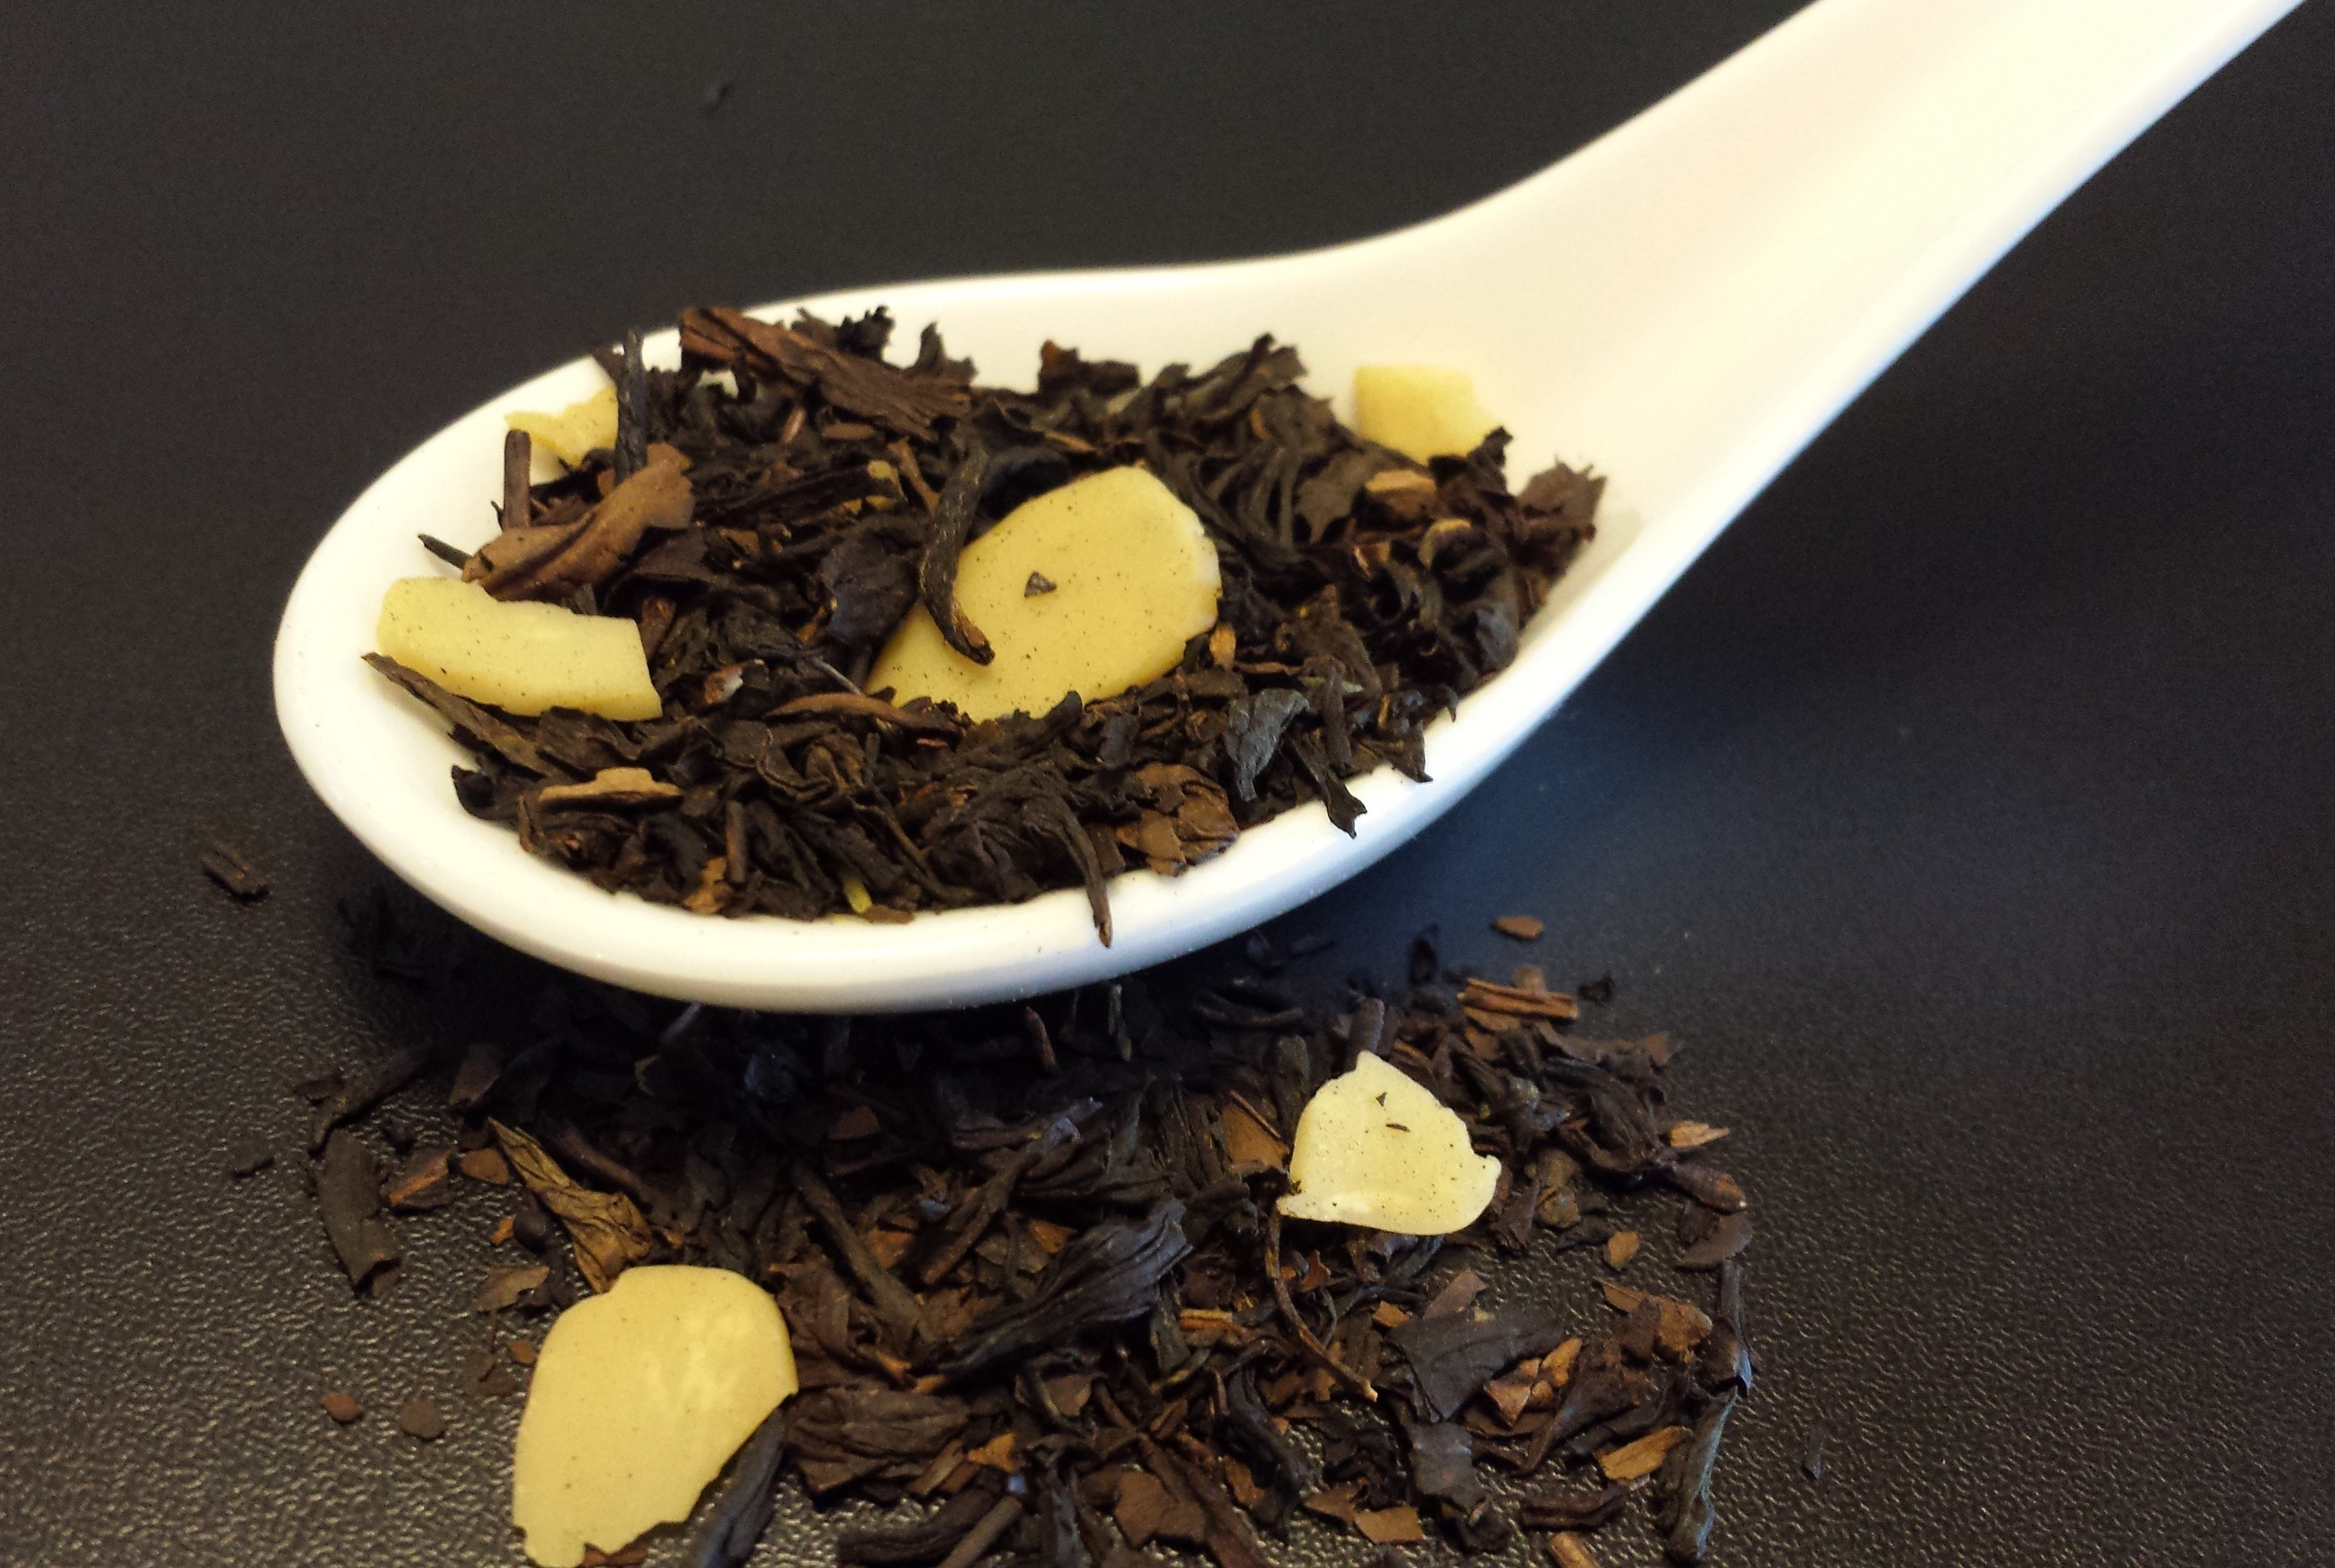 Roasted chestnut, black tea, Chinese tea, Yerba Mate, Oolong, almonds